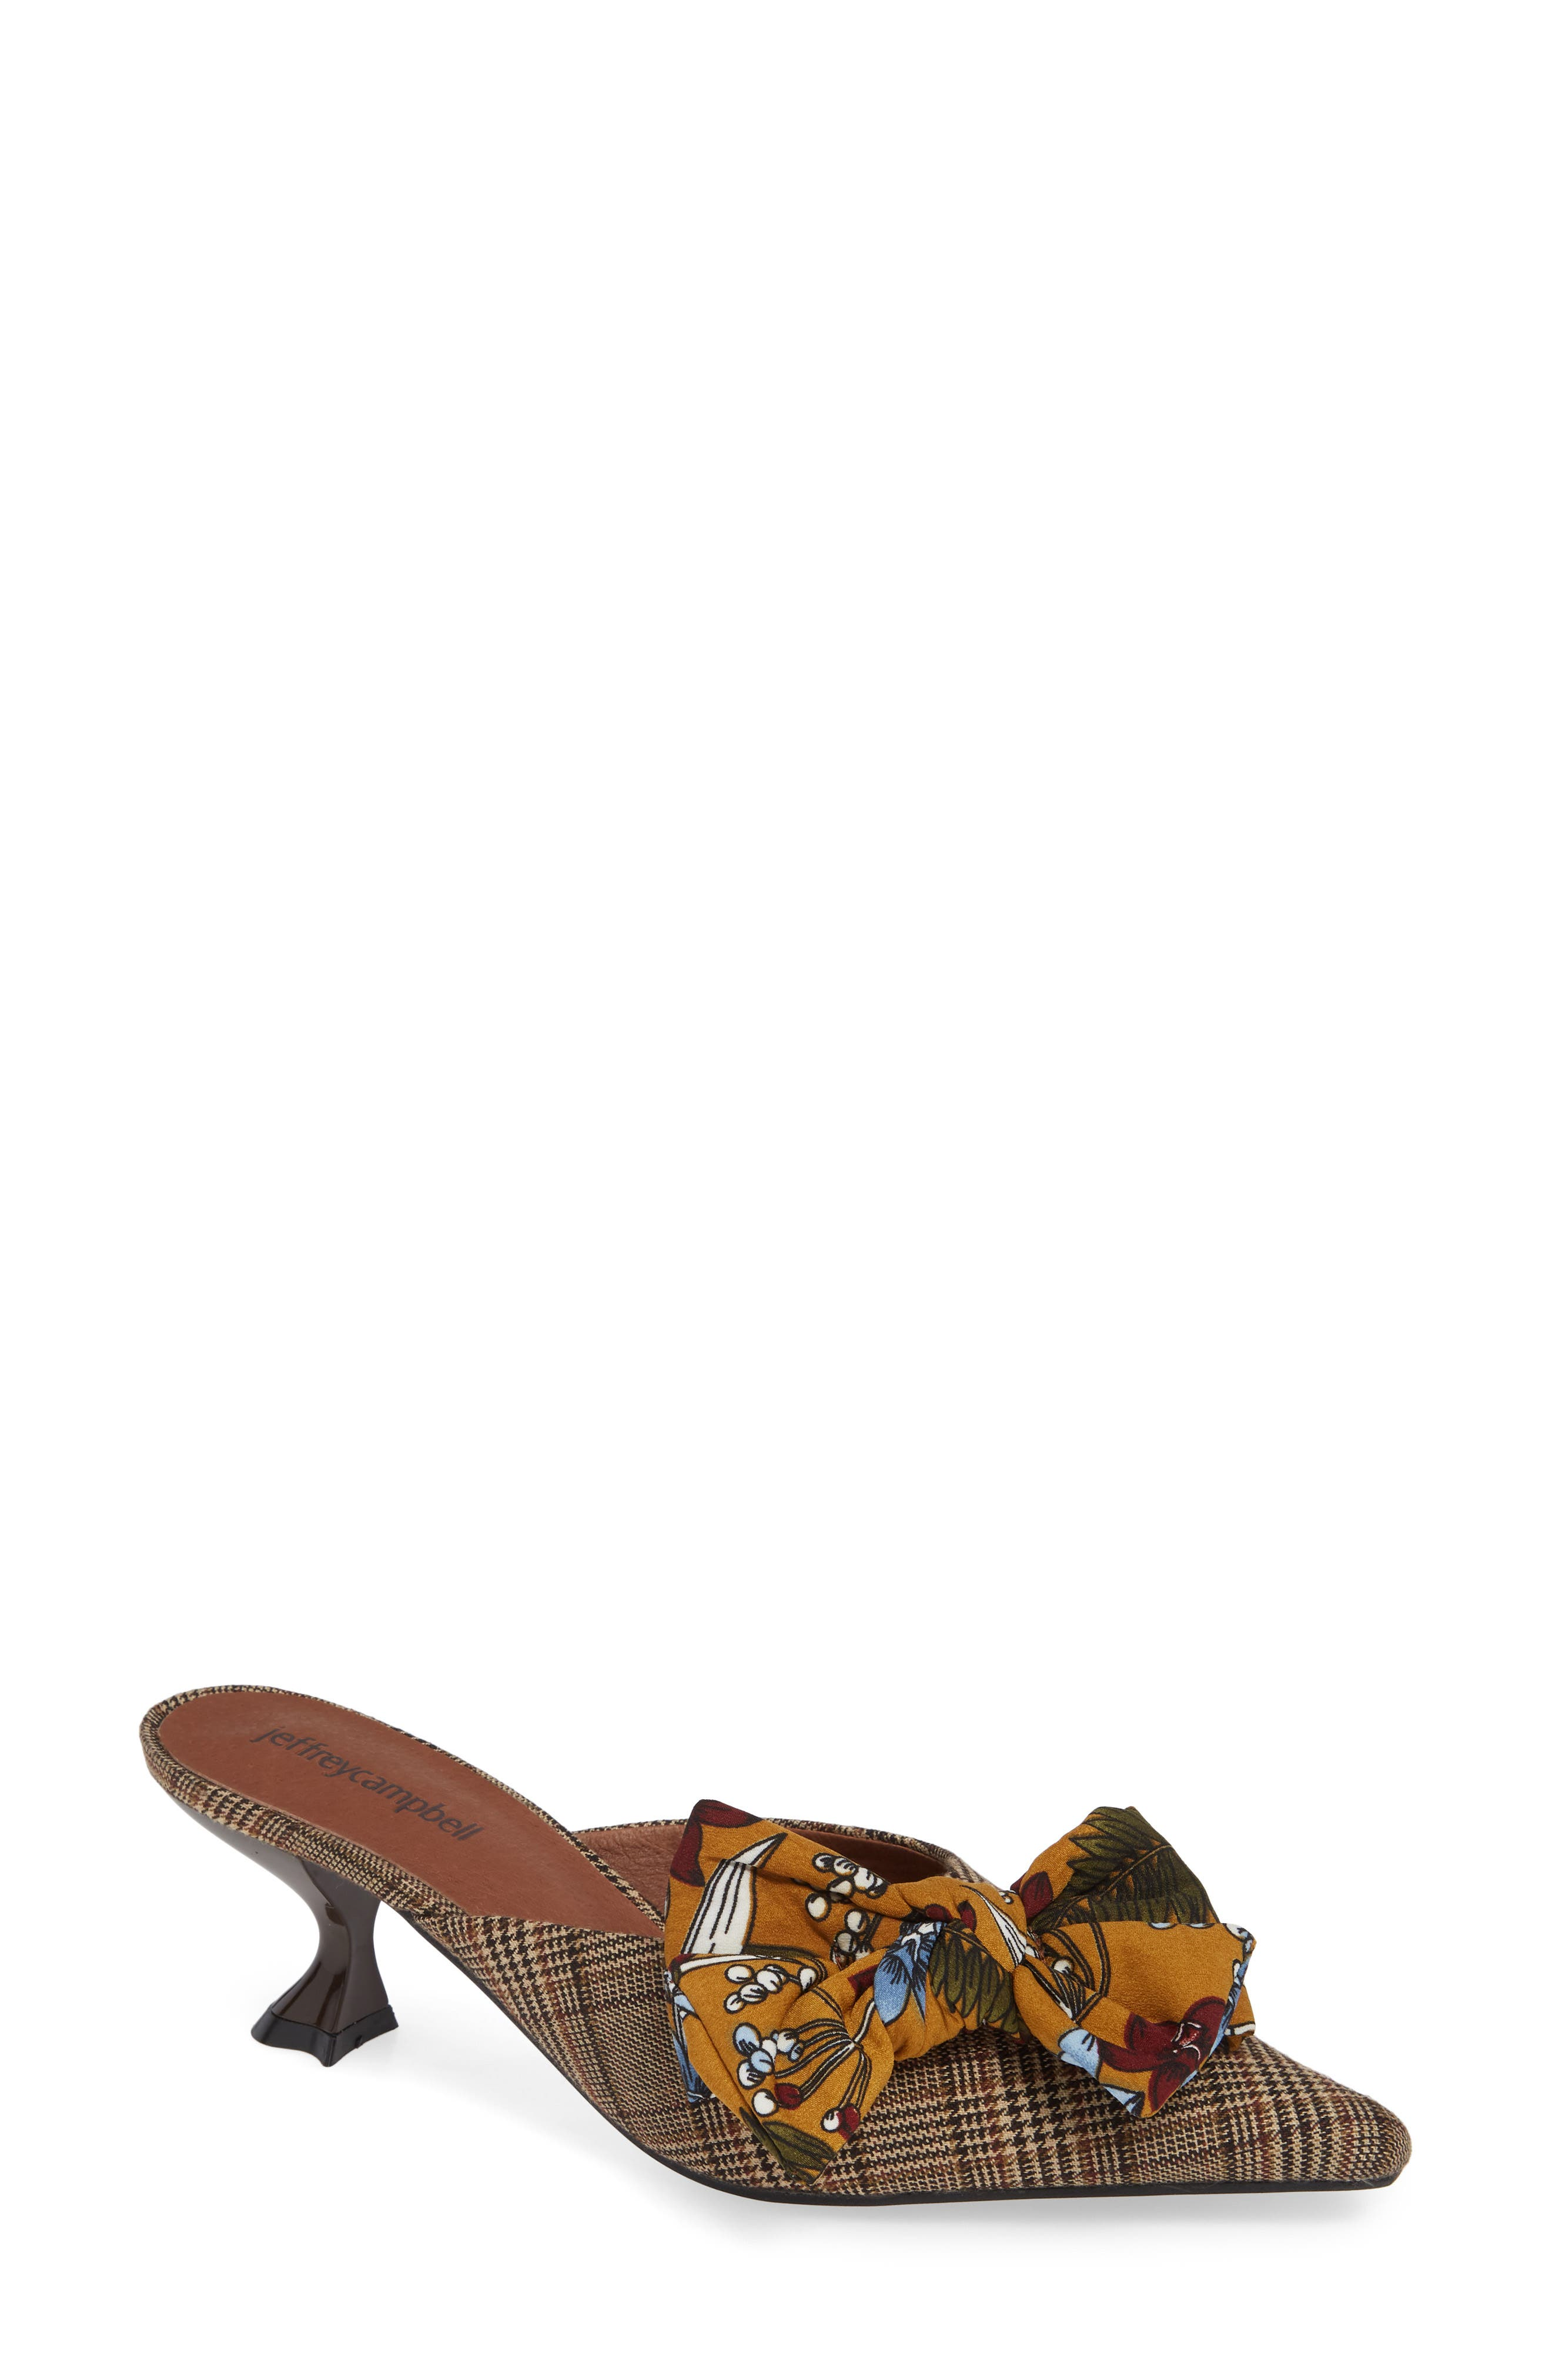 Adorn Pointy Toe Mule,                         Main,                         color, MUSTARD/ NAVY FLORAL MULTI